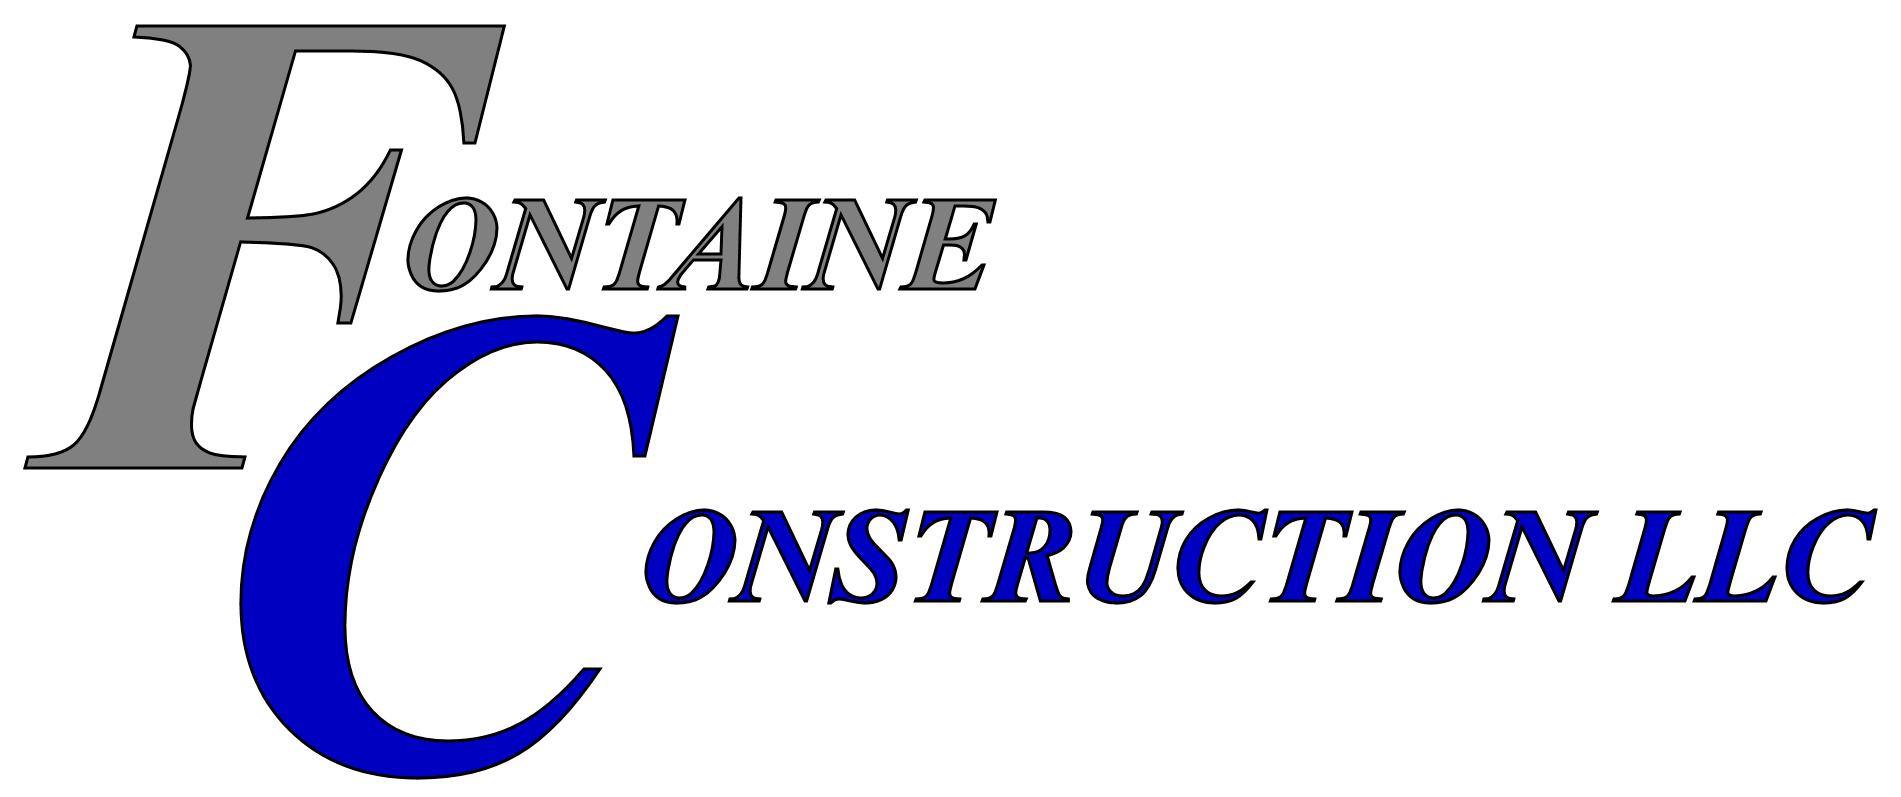 Fontaine Construction